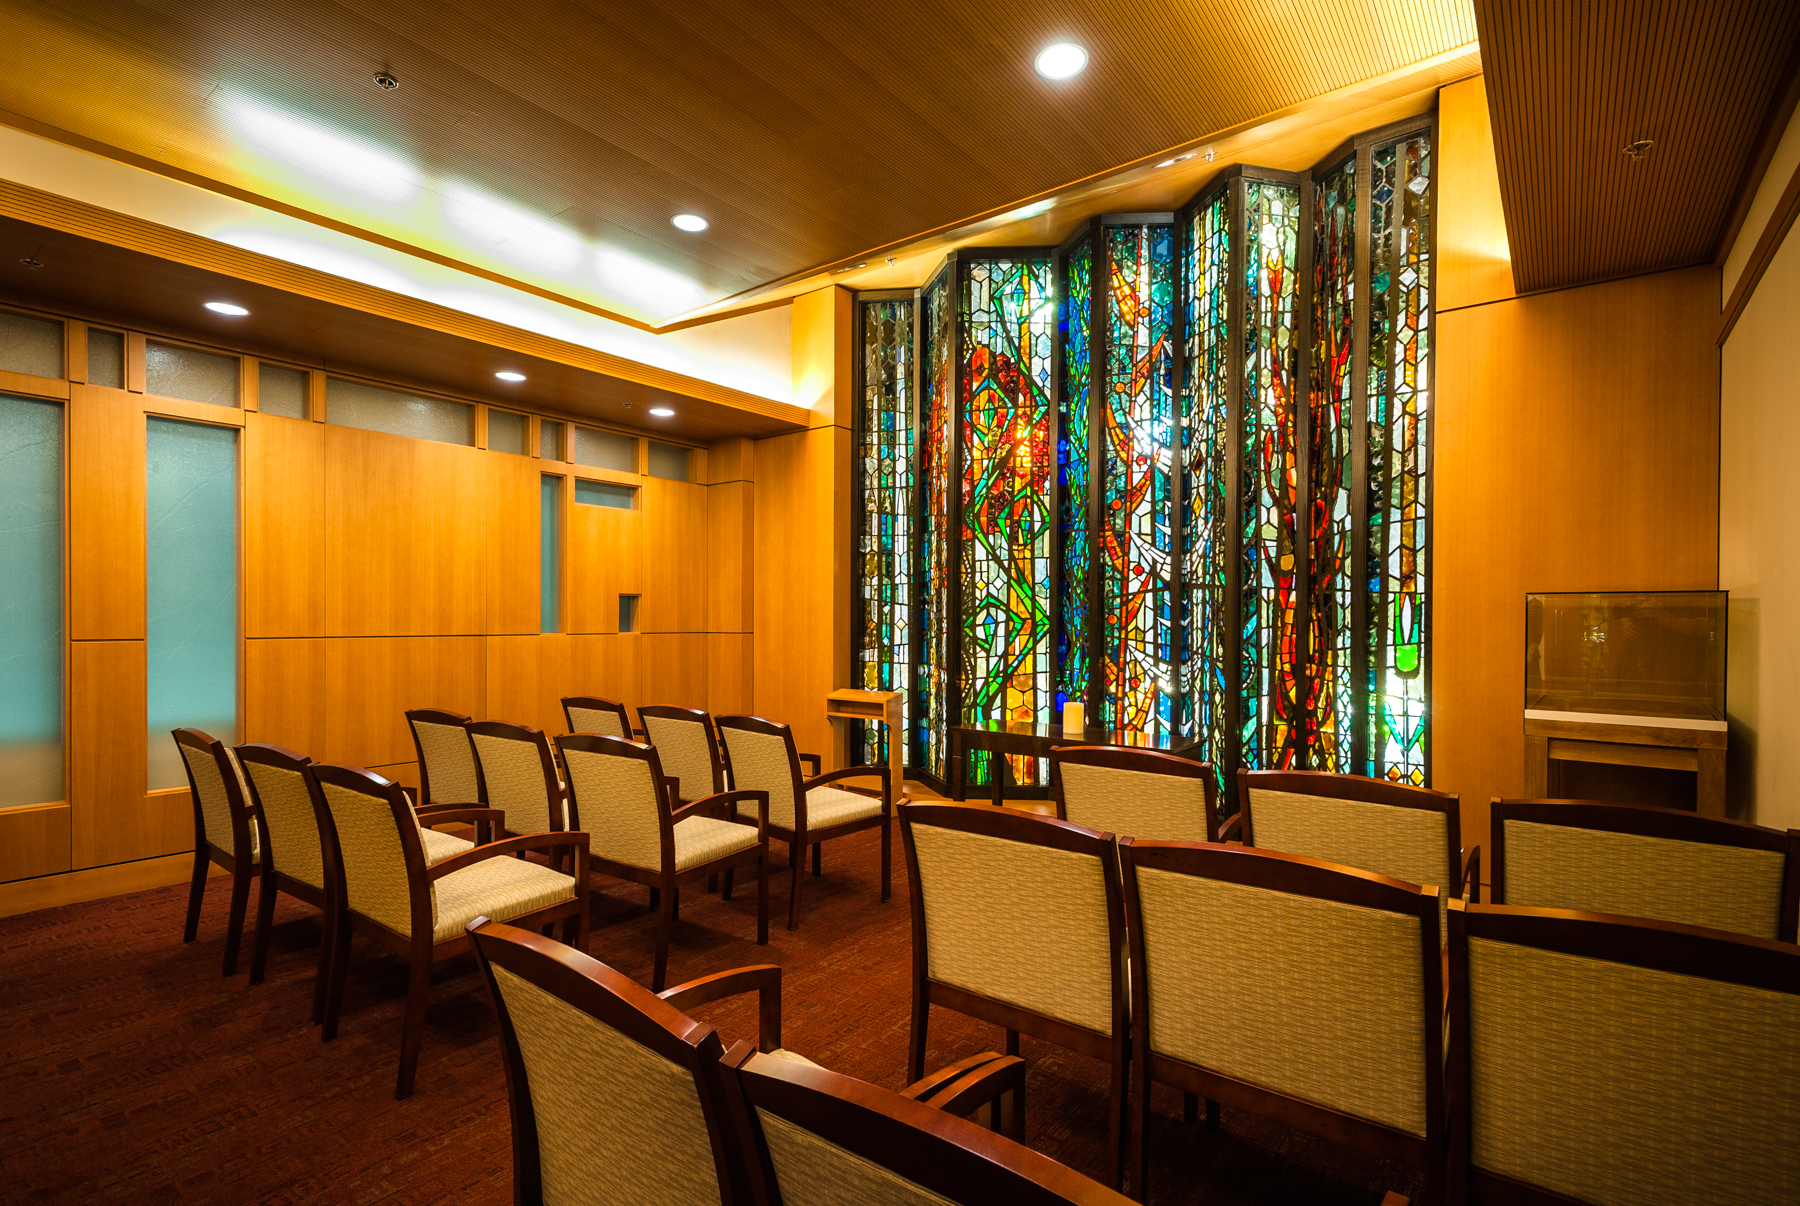 - The Dana Farber Cancer Institute built its first Prayer and Meditation Room on an inpatient floor in 1990 and its full chapel in 1995. Planners decided not to name this chapel in an effort to make it as inclusive as possible.